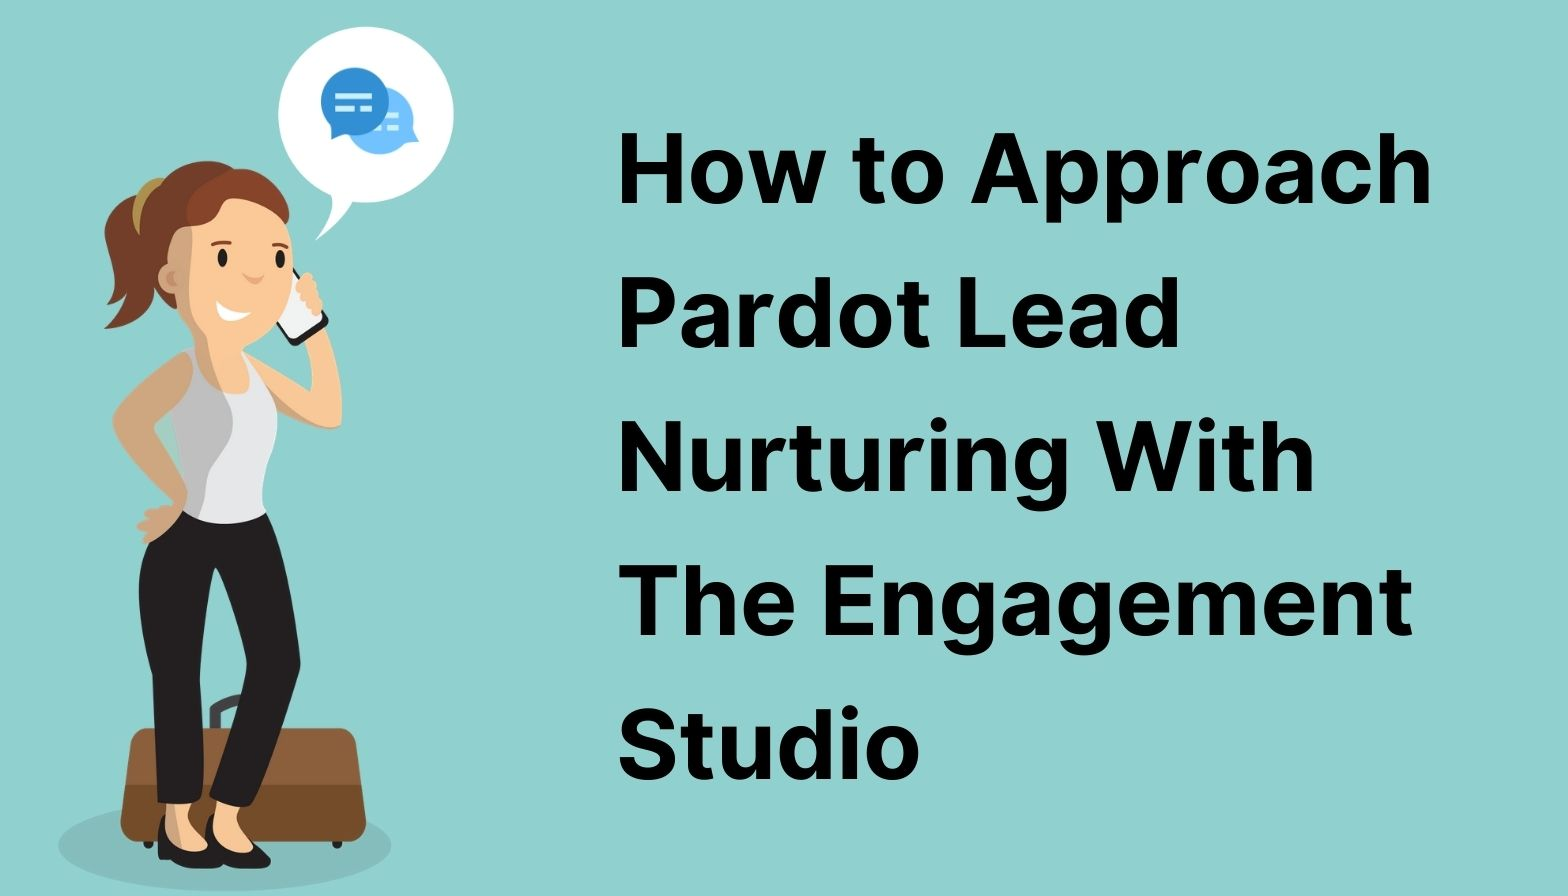 BLOG FEATURES IMAGES - how to approach pardot lead nurtuting with the engagement studio